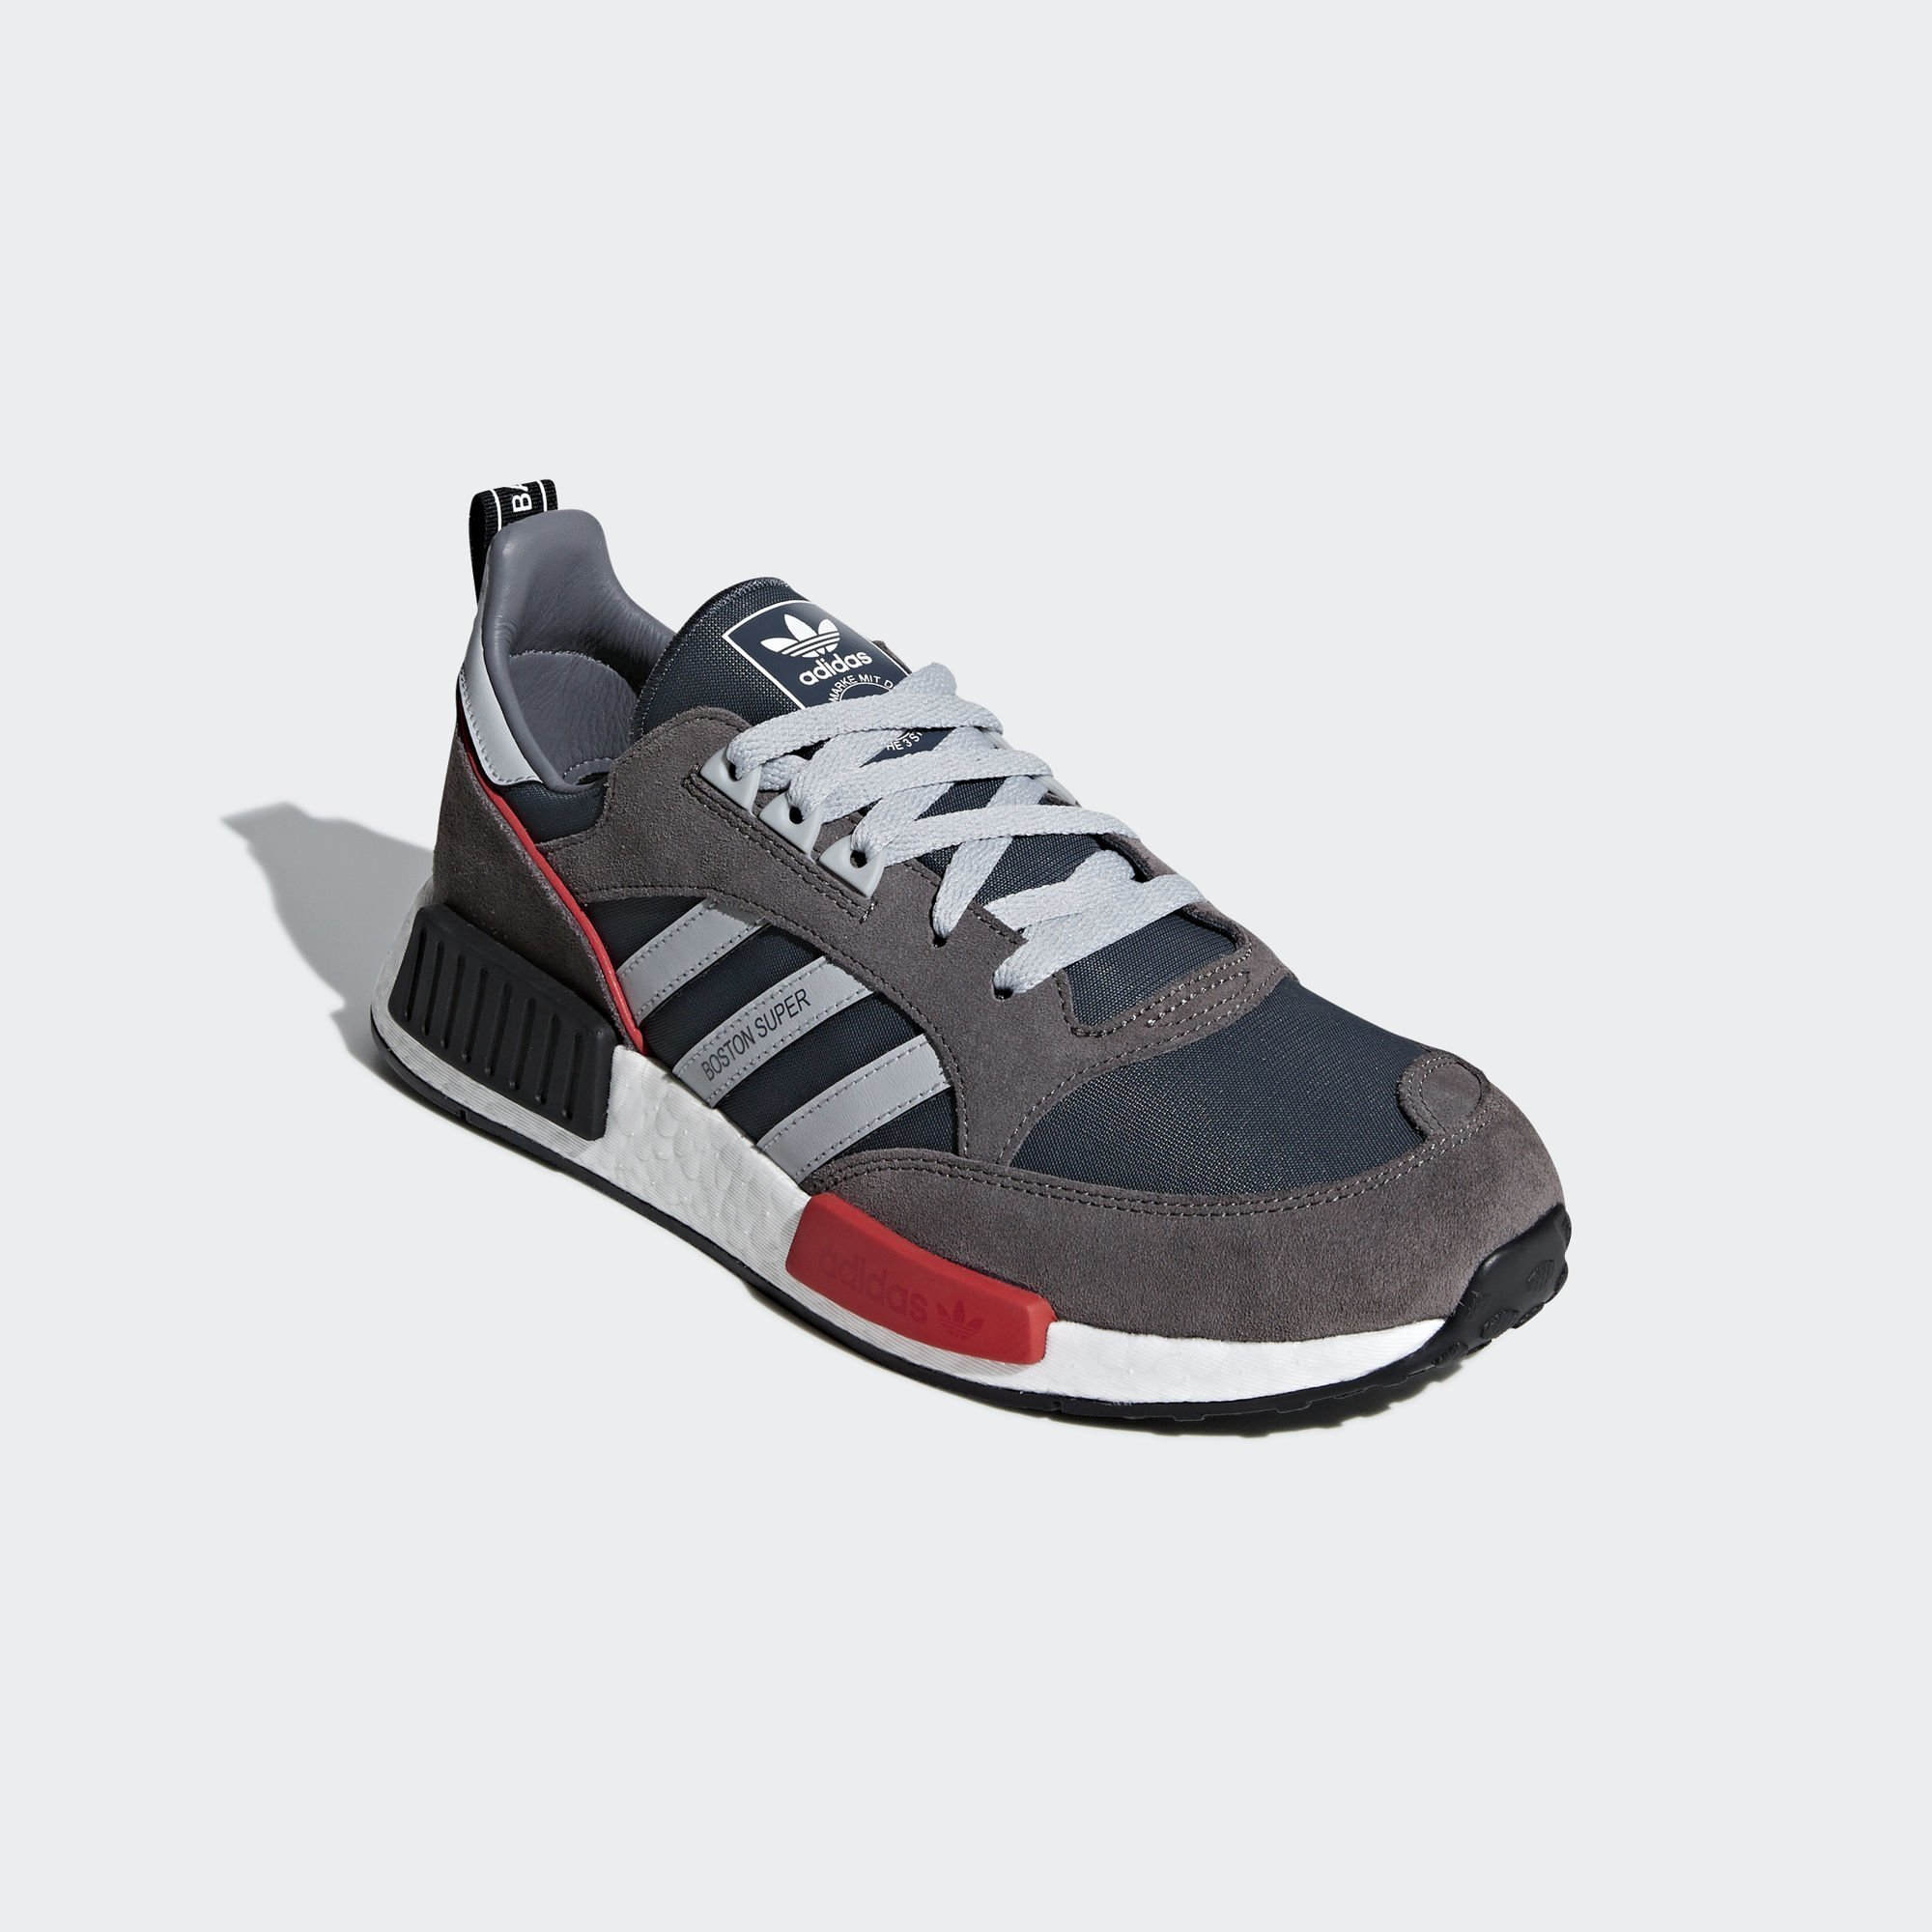 adidas Boston Super x R1 'Never Made' (G26776)